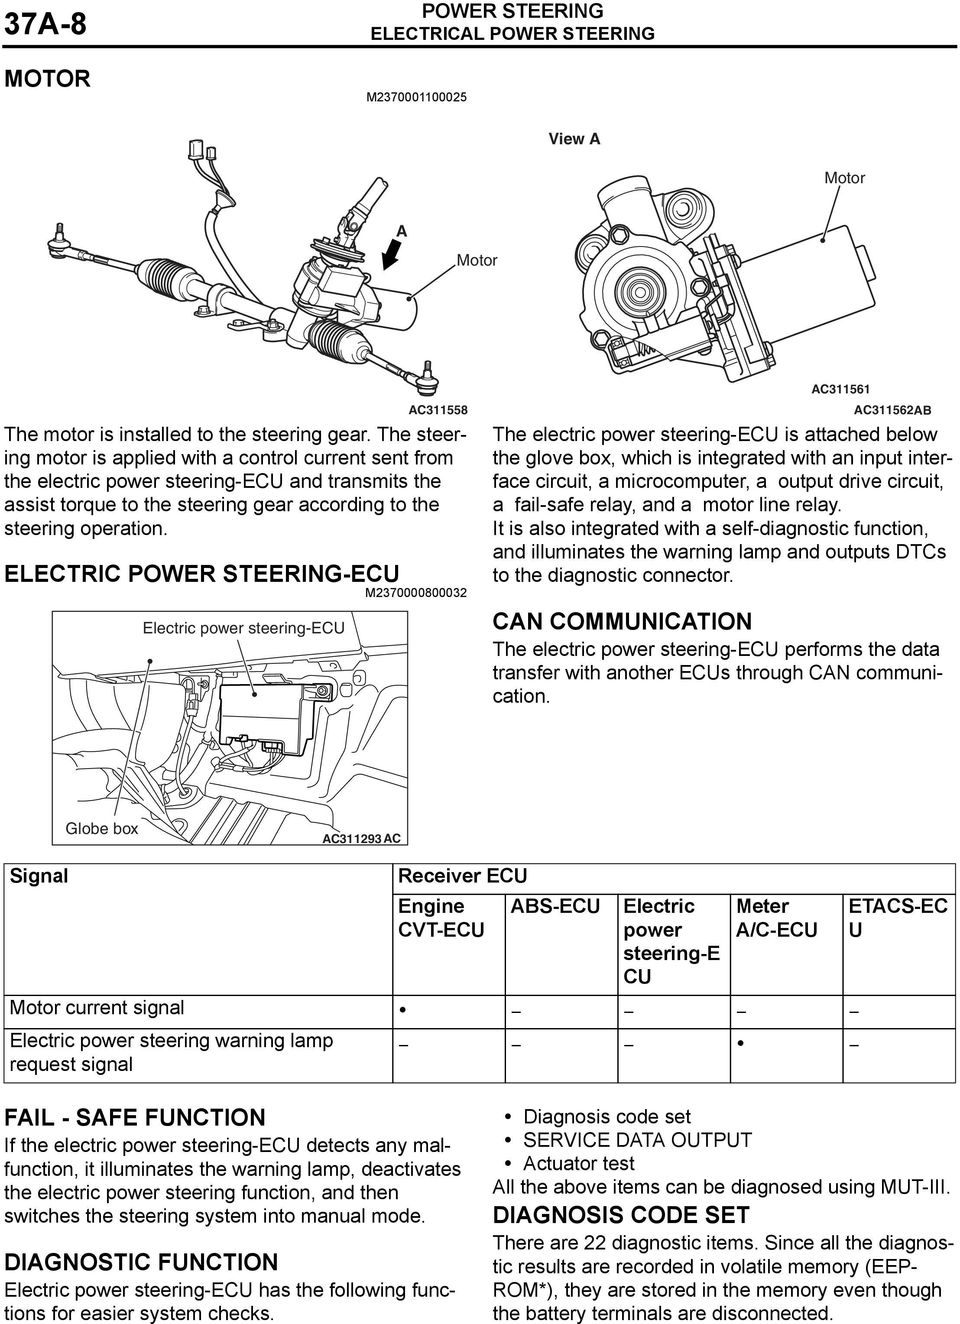 Power Steering Group 37a 37a1 Contents General Information 37a2. Electric Ecu M2370000800032 Power Steeringecu Ac311562ab The. Wiring. Fail Safe Relay Wiring Diagram At Scoala.co